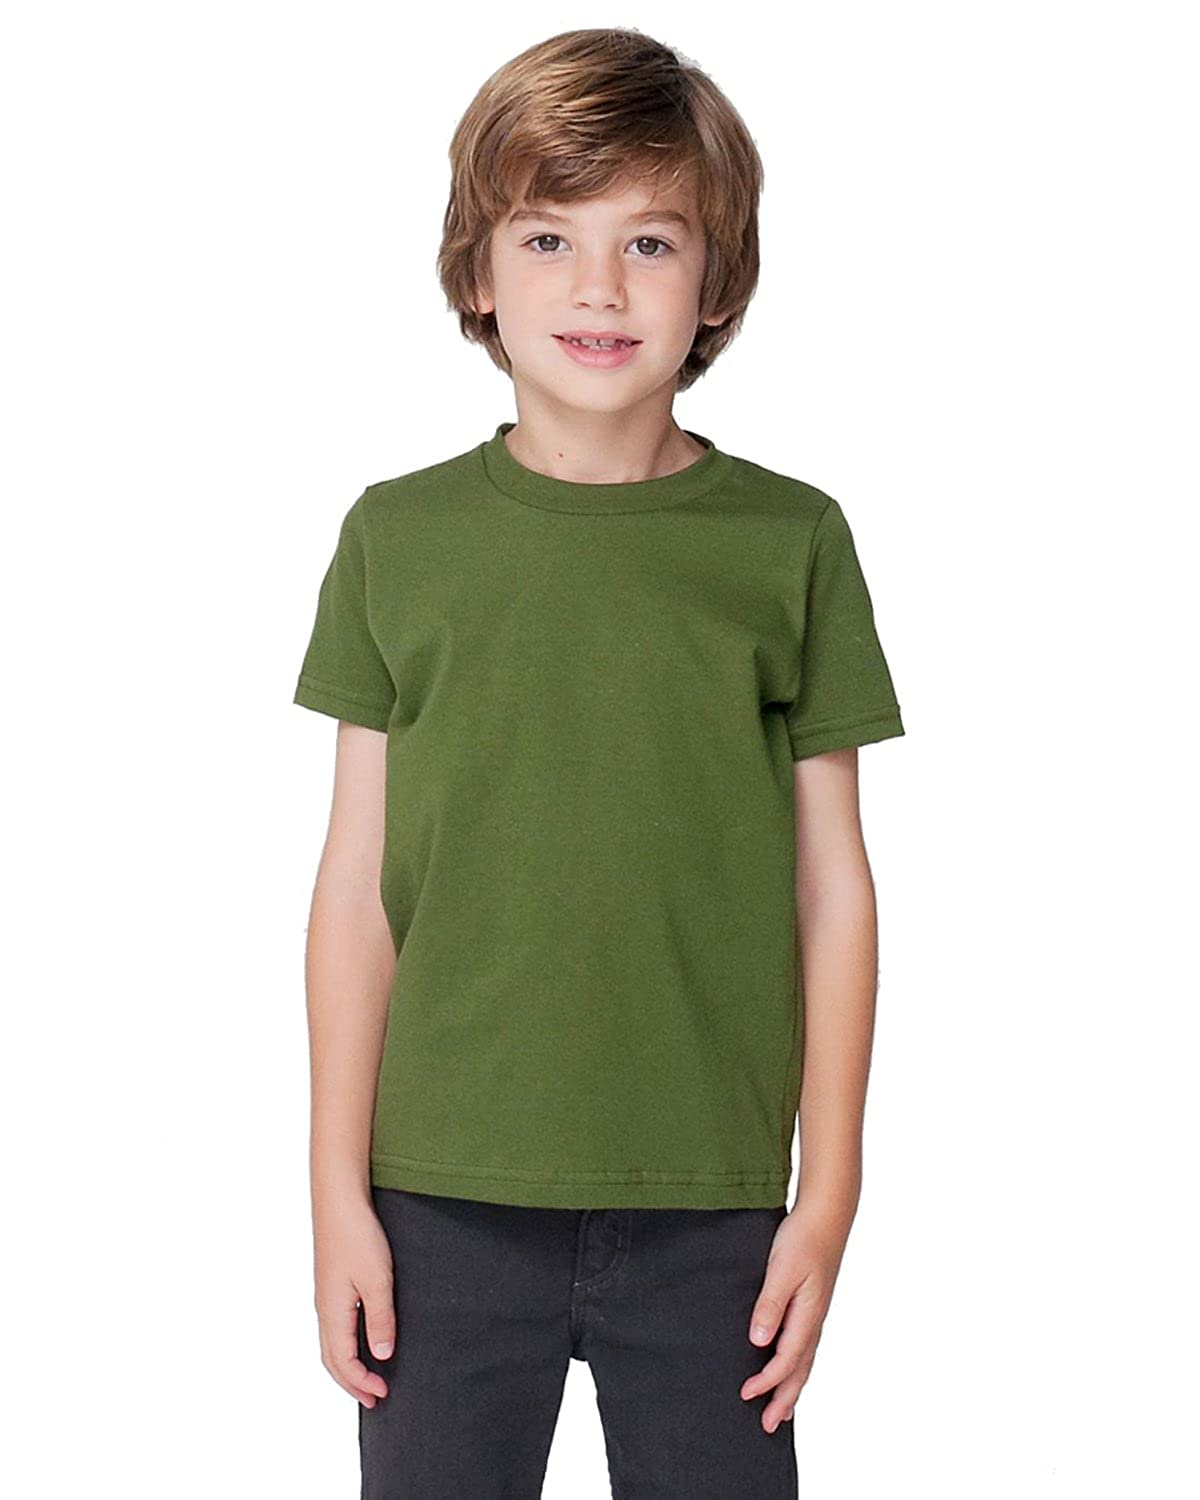 American Apparel 2105 Toddlers Fine Jersey Short-Sleeve T-Shirt